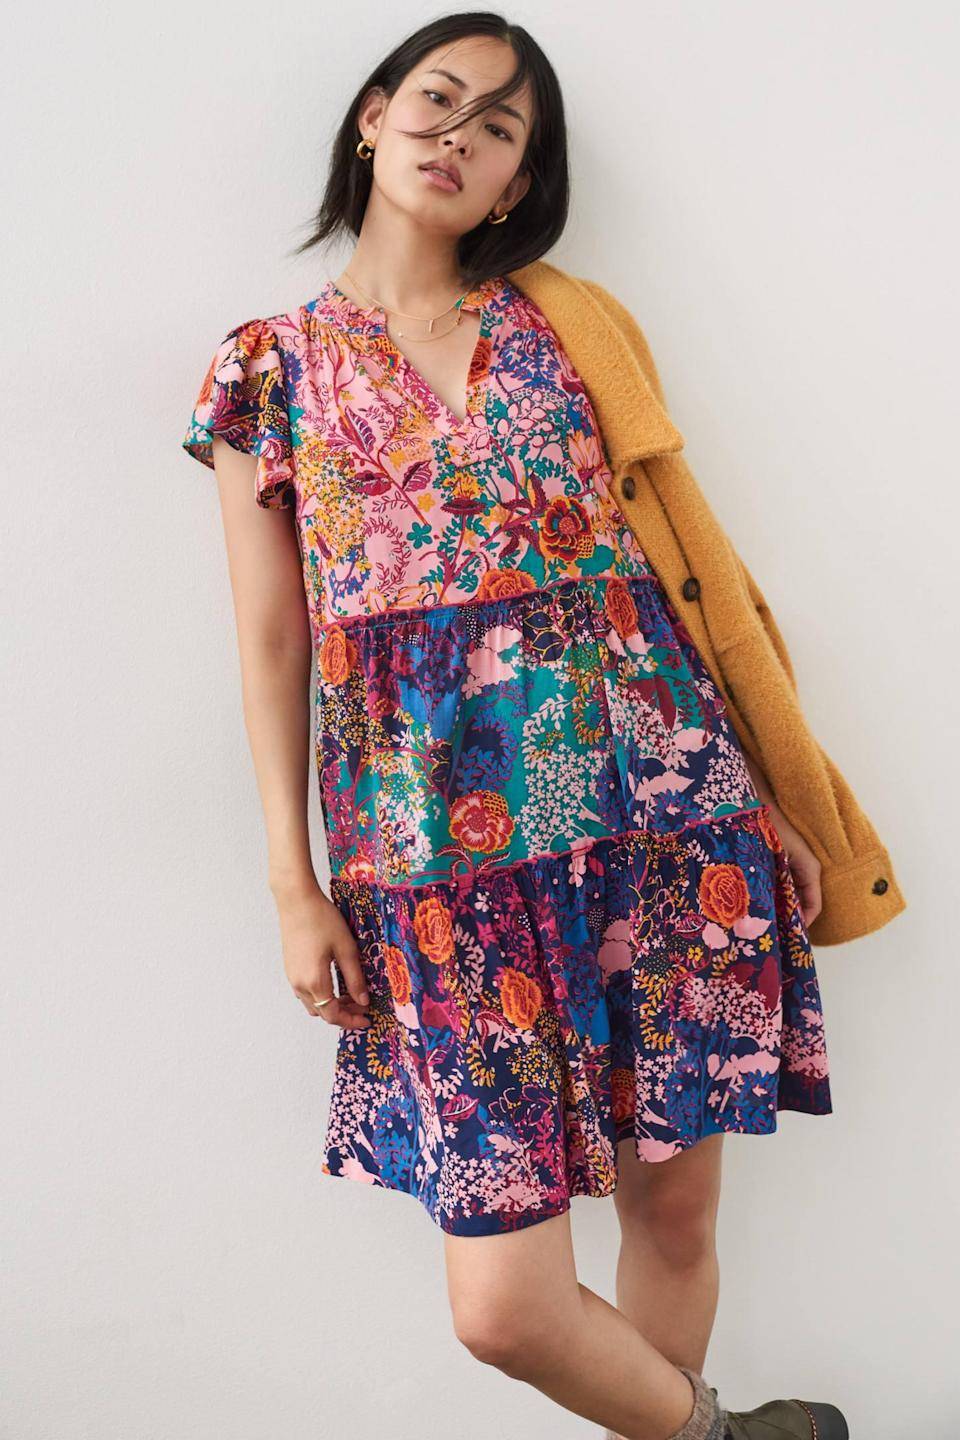 """<h2>Anthropologie Penrose Tiered Tunic Dress</h2><br>Anthropologie is beloved by readers for its dressed-up <em>je ne sais quoi</em> — everything in its sweet selection boasts a bold aesthetic and a bit of feminine flair. The retailer's dresses tended to skew on the pricier side, but we found possibly the most quintessentially Anthro dress we've ever seen — and it's a cool $98. This, along with a number of near-perfect 4-star reviews, is tipping this frock into our carts.<br><br><strong>Anthropologie</strong> Penrose Tiered Tunic Dress, $, available at <a href=""""https://go.skimresources.com/?id=30283X879131&url=https%3A%2F%2Fwww.anthropologie.com%2Fshop%2Fpenrose-tiered-tunic-dress%3Fcategory%3Ddresses%26color%3D066%26type%3DSTANDARD%26quantity%3D1"""" rel=""""nofollow noopener"""" target=""""_blank"""" data-ylk=""""slk:Anthropologie"""" class=""""link rapid-noclick-resp"""">Anthropologie</a>"""